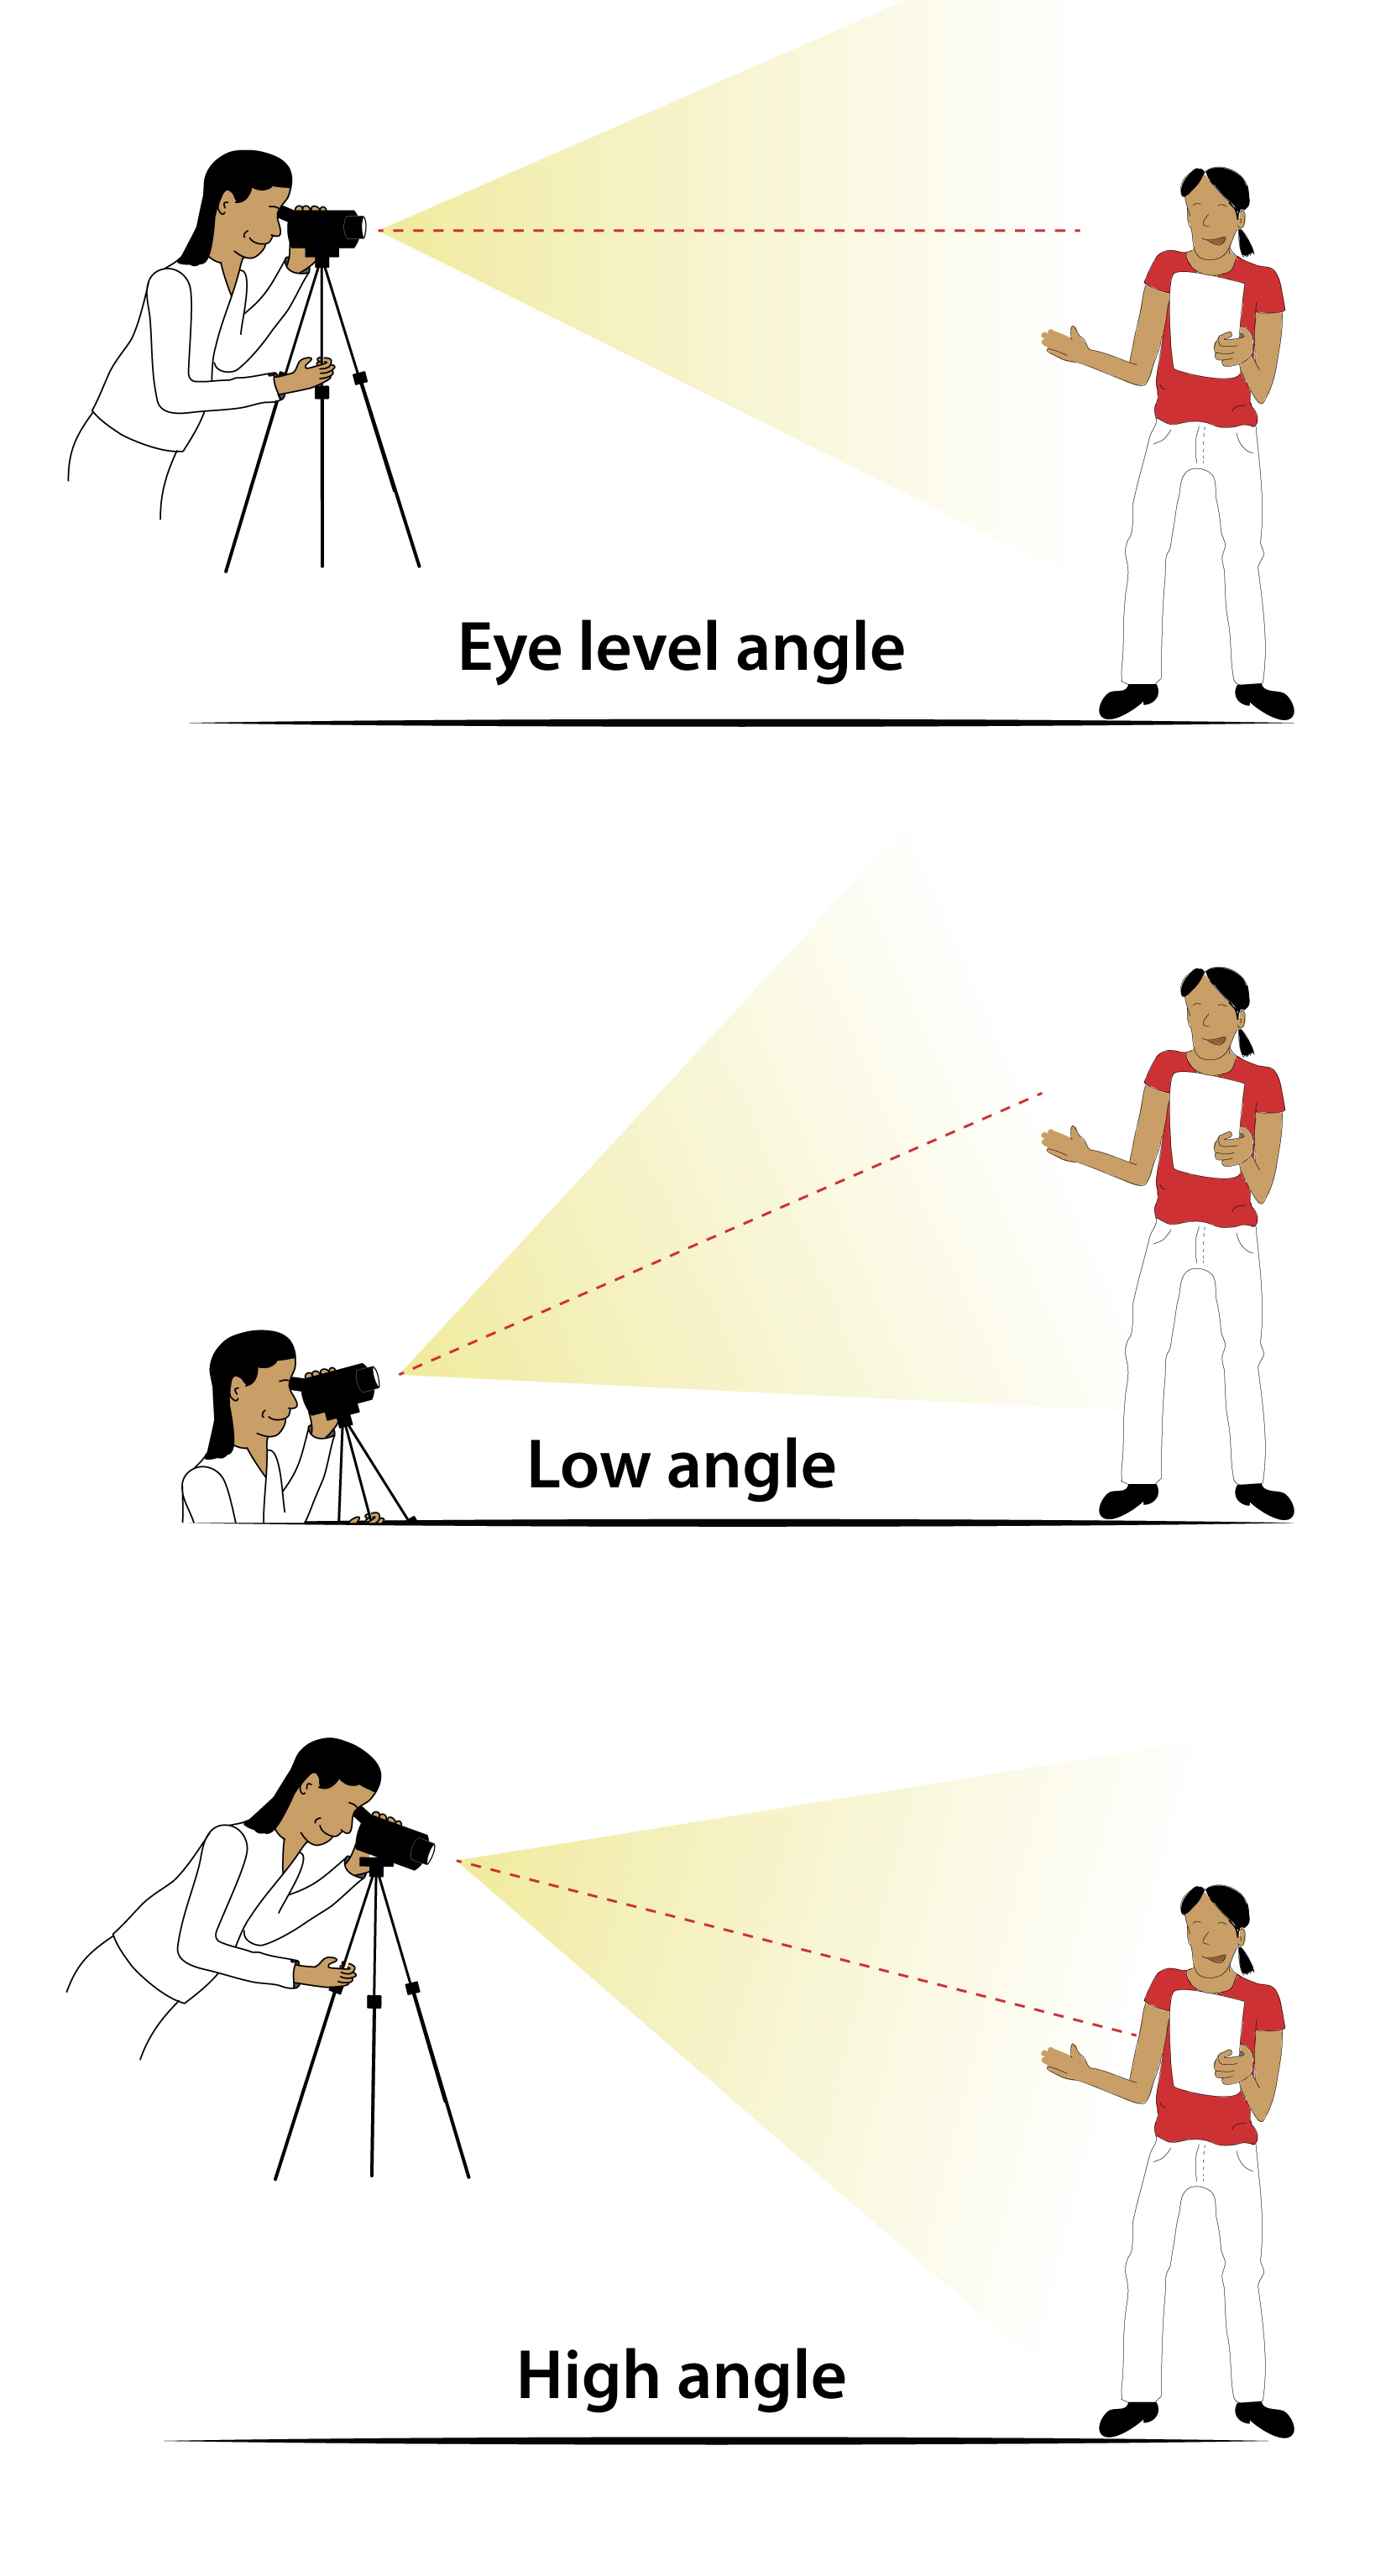 Illustration of a person interviewing someone at eye level, low and high angle